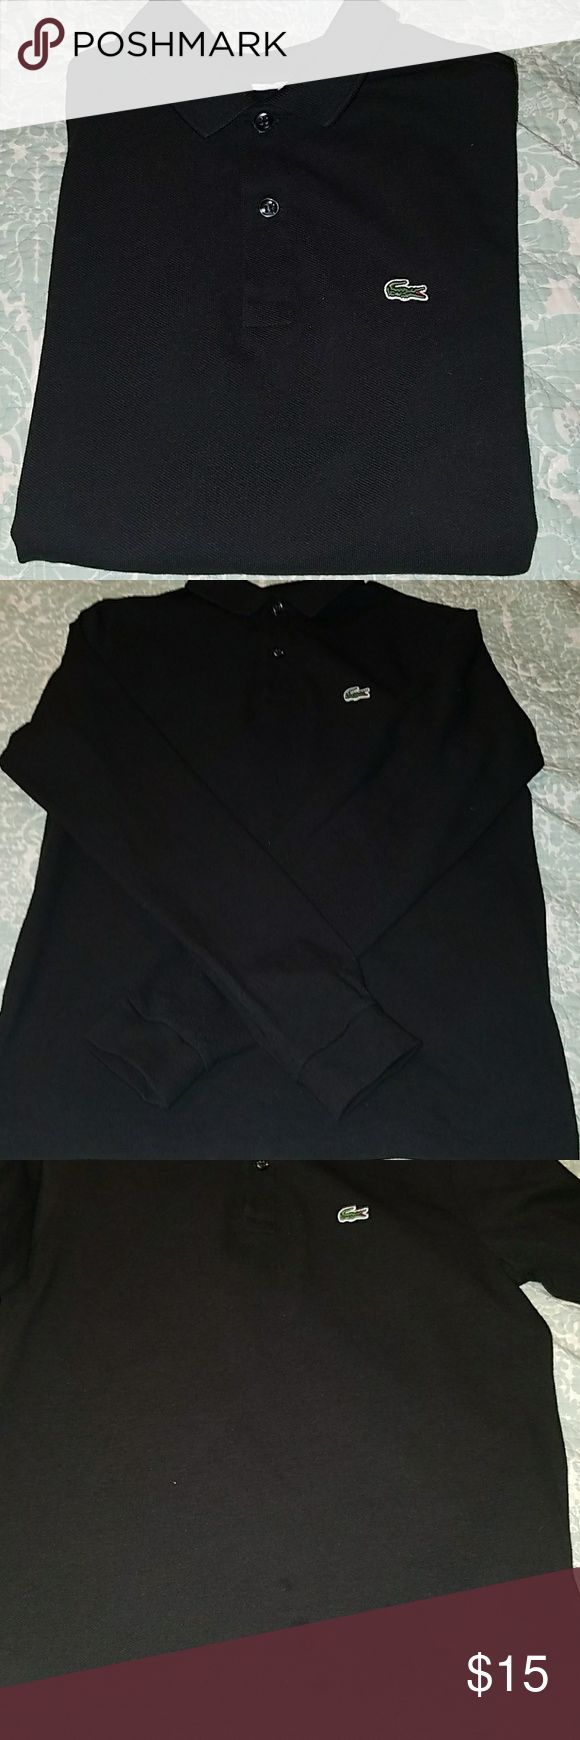 Lacoste long sleeve black polo shirt Boys long sleeve Lacoste polo shirt. GENTLY USED. Only worn twice for special occasions.  No holes or tears. There are a few small spots on bottom front part of shirt. They are actually a darker black color so shirt is barely seen when worn. See pictures. This shirt was recently purchased and it's still for sale for $50 in lacoste store. Lacoste Shirts & Tops Polos